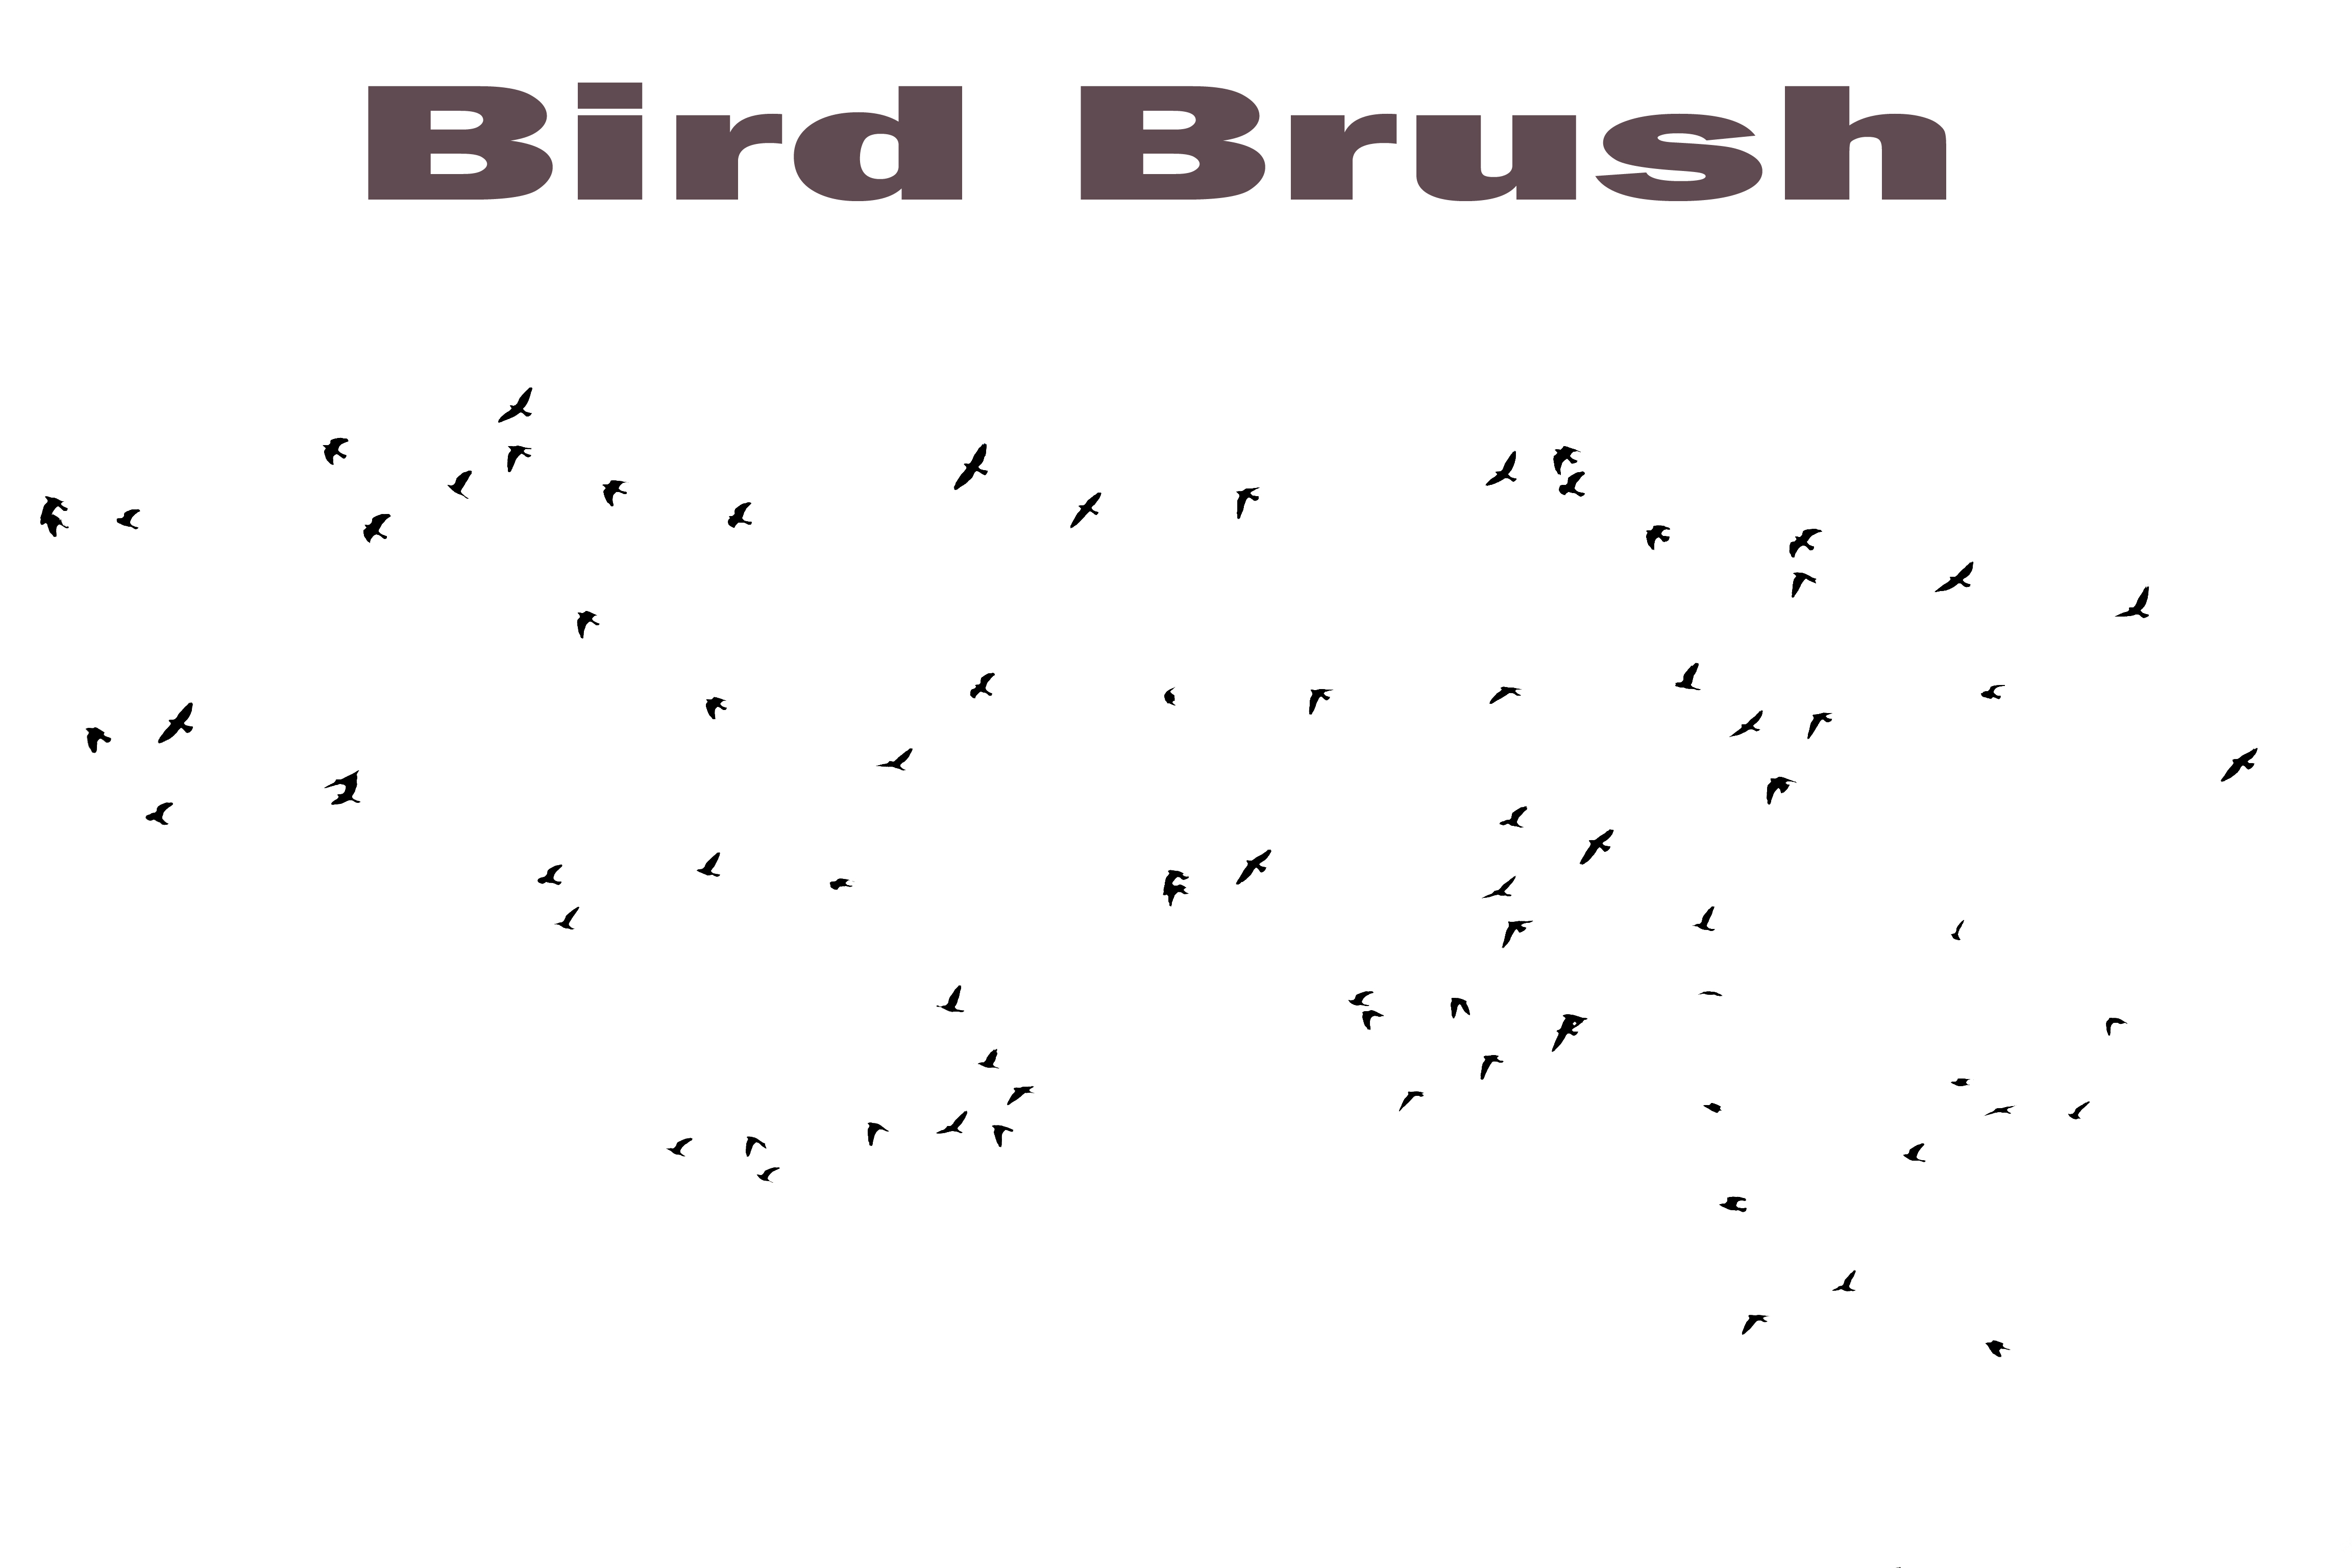 Adobe photoshop cs3 brushes plugins collection free